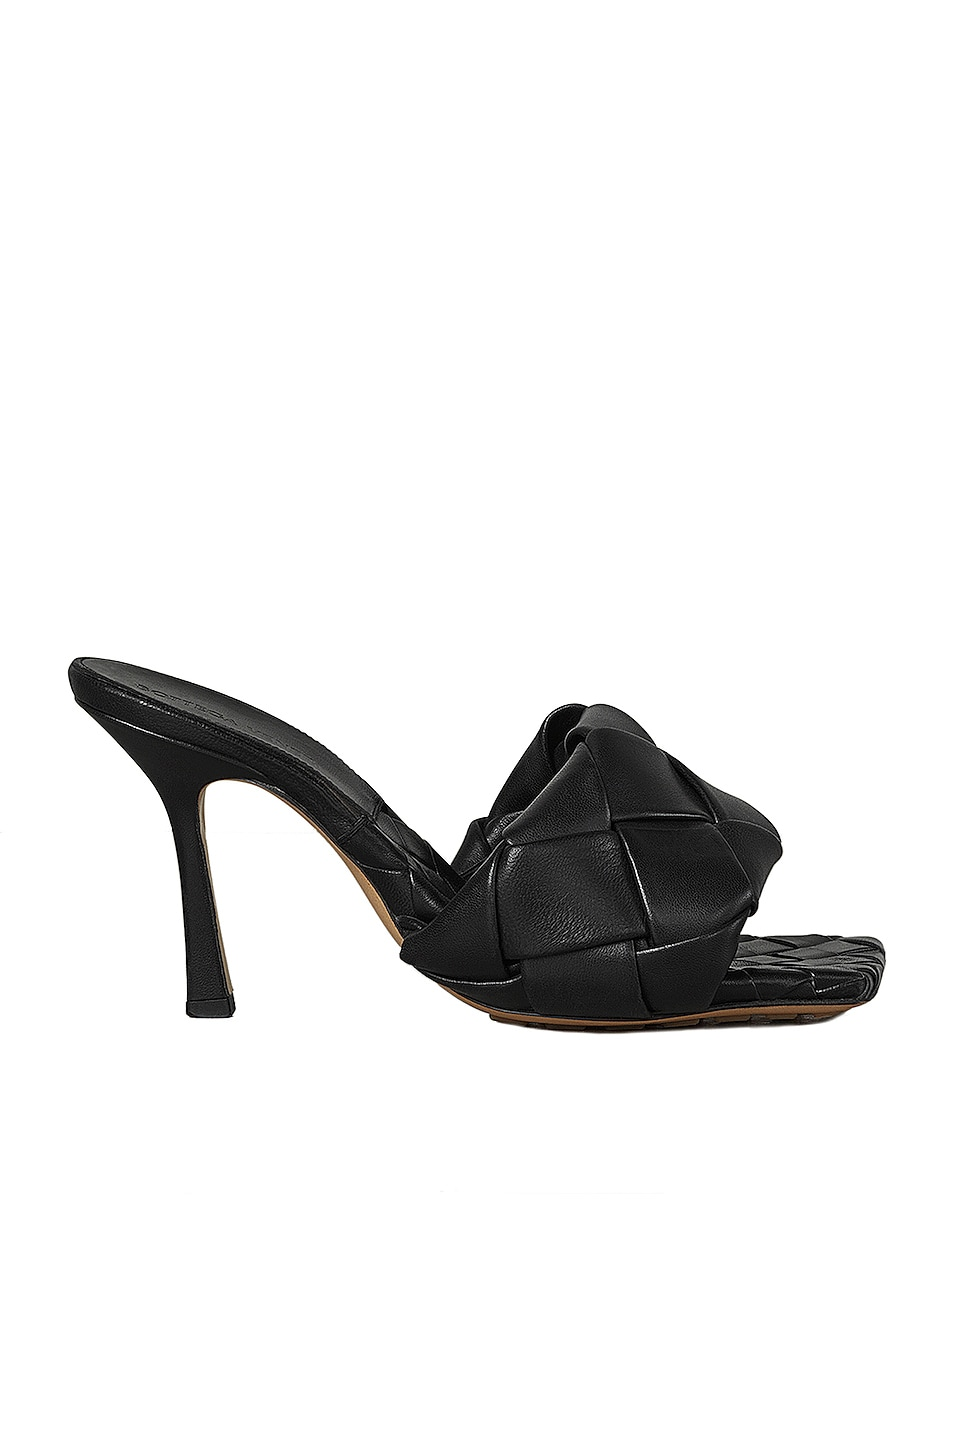 Image 1 of Bottega Veneta BV Lido Sandals in Black